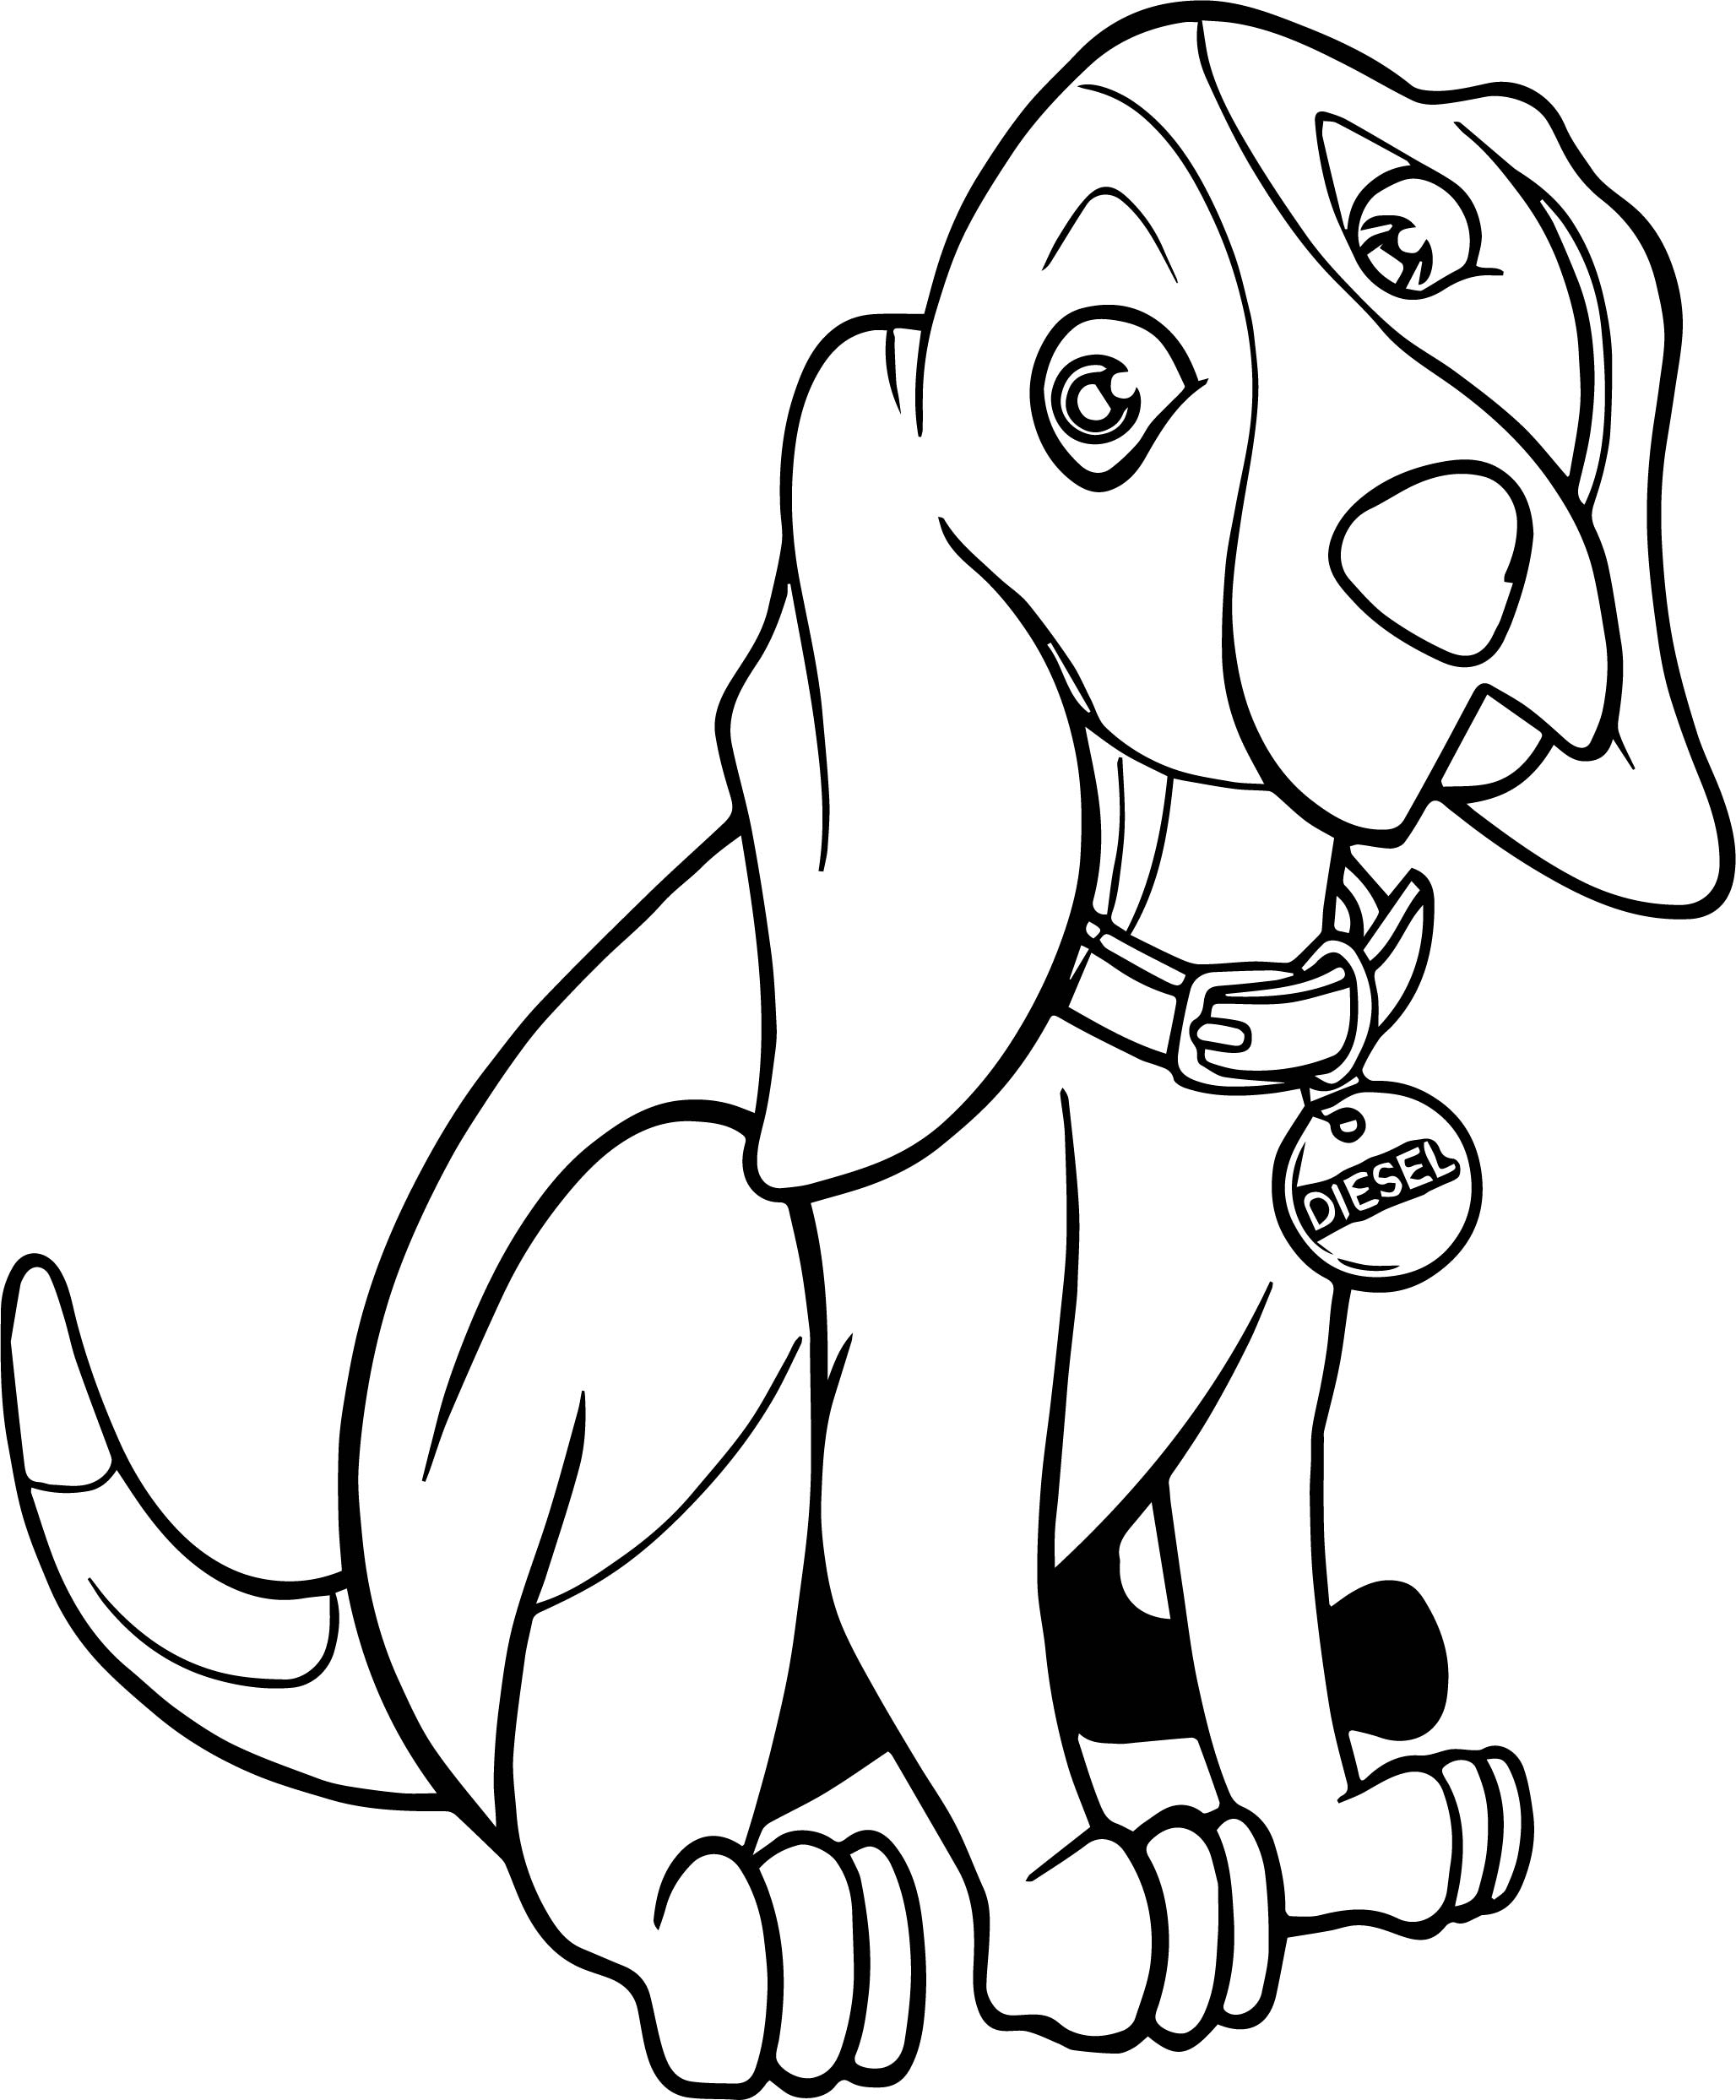 Diesel Dog Coloring Pages